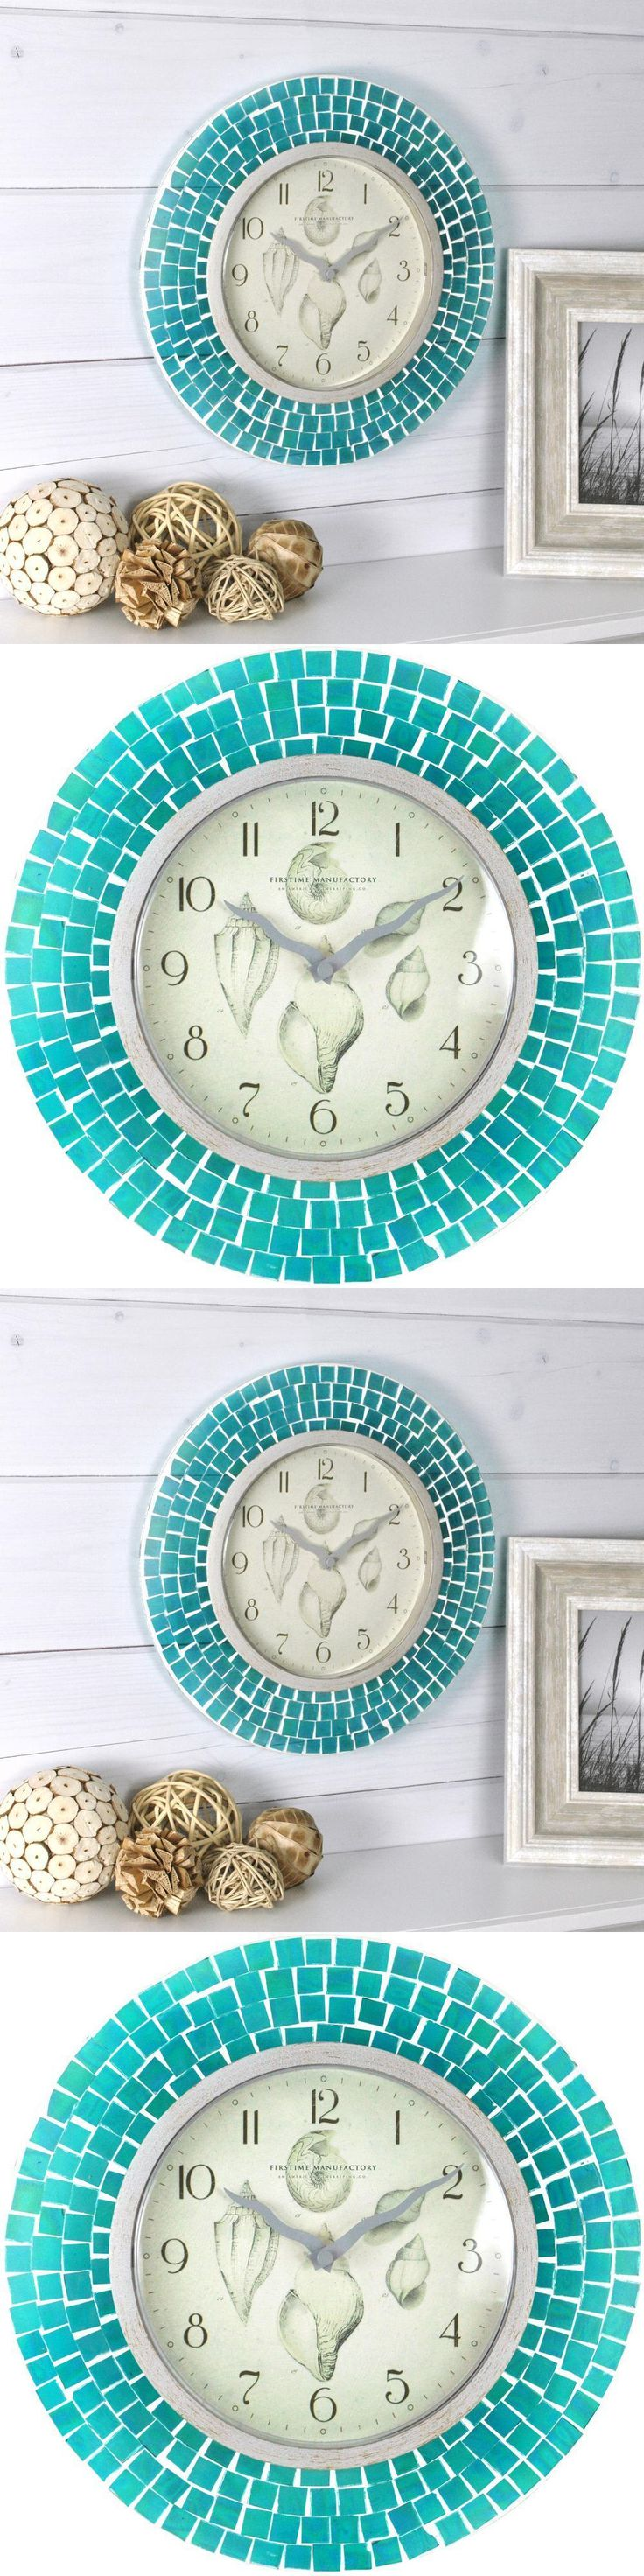 best 25 nautical wall clocks ideas on pinterest nautical clocks